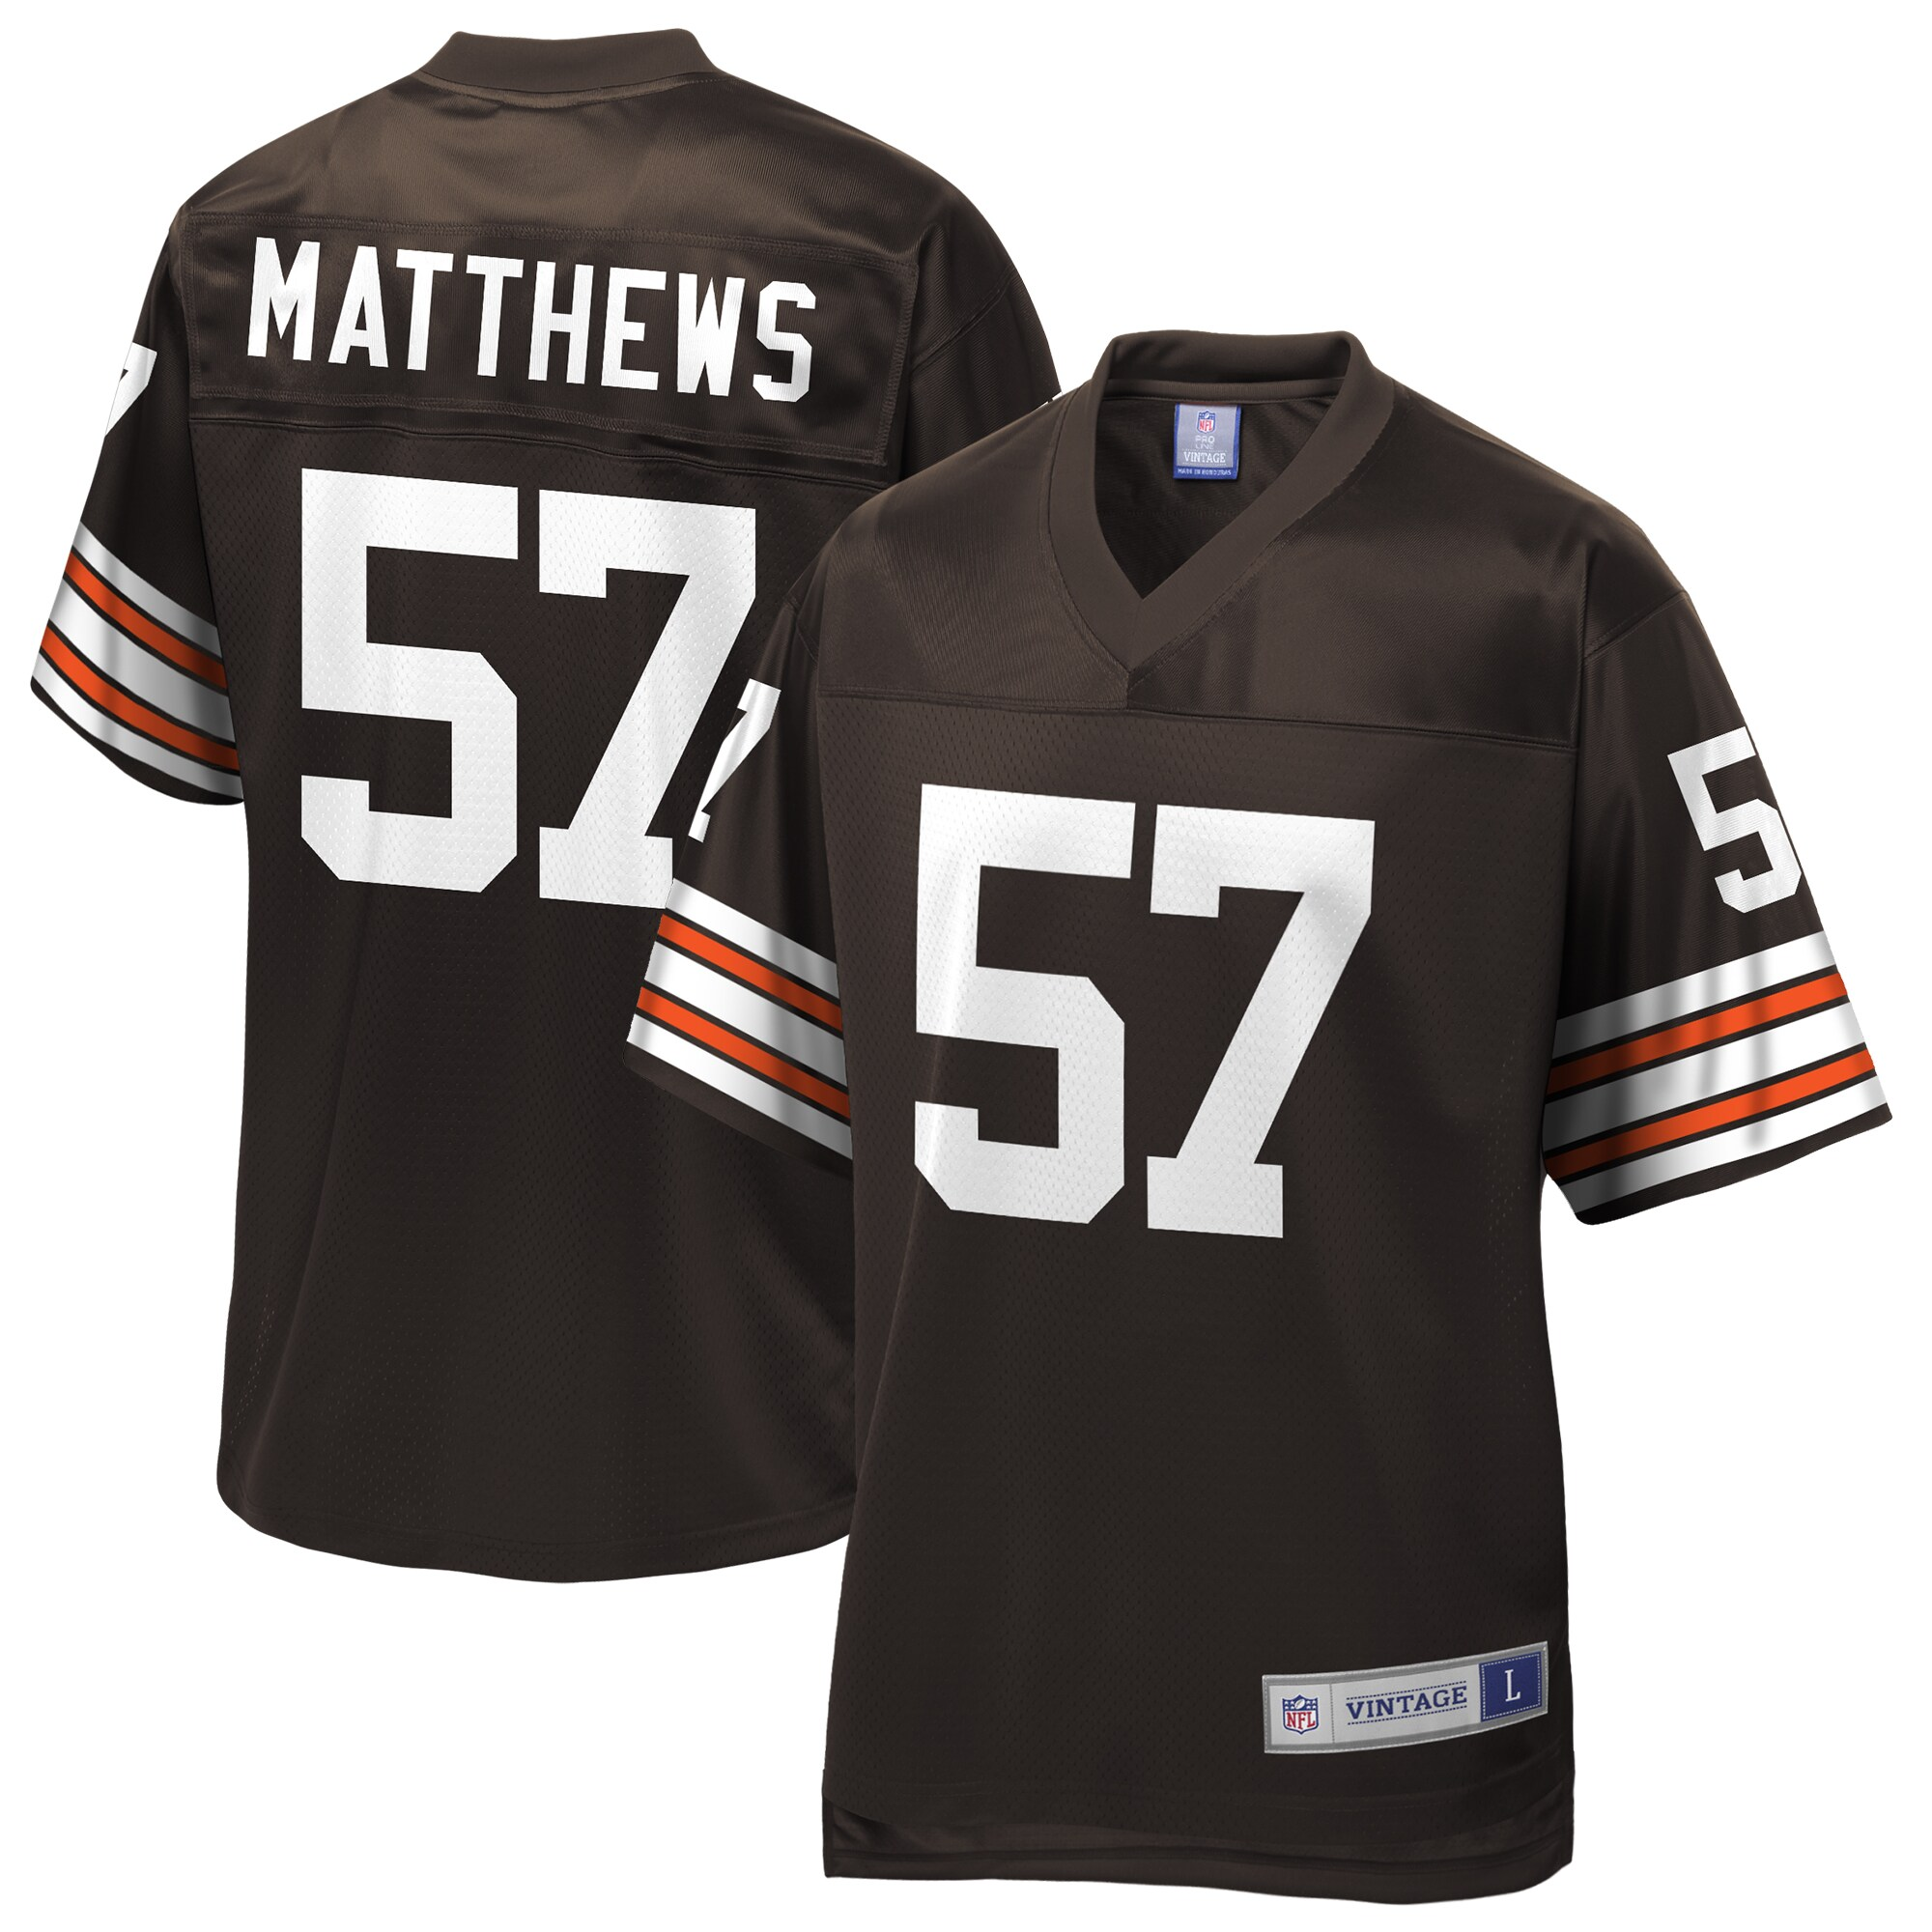 Clay Matthews Cleveland Browns NFL Pro Line Throwback Retired Player Jersey - Brown